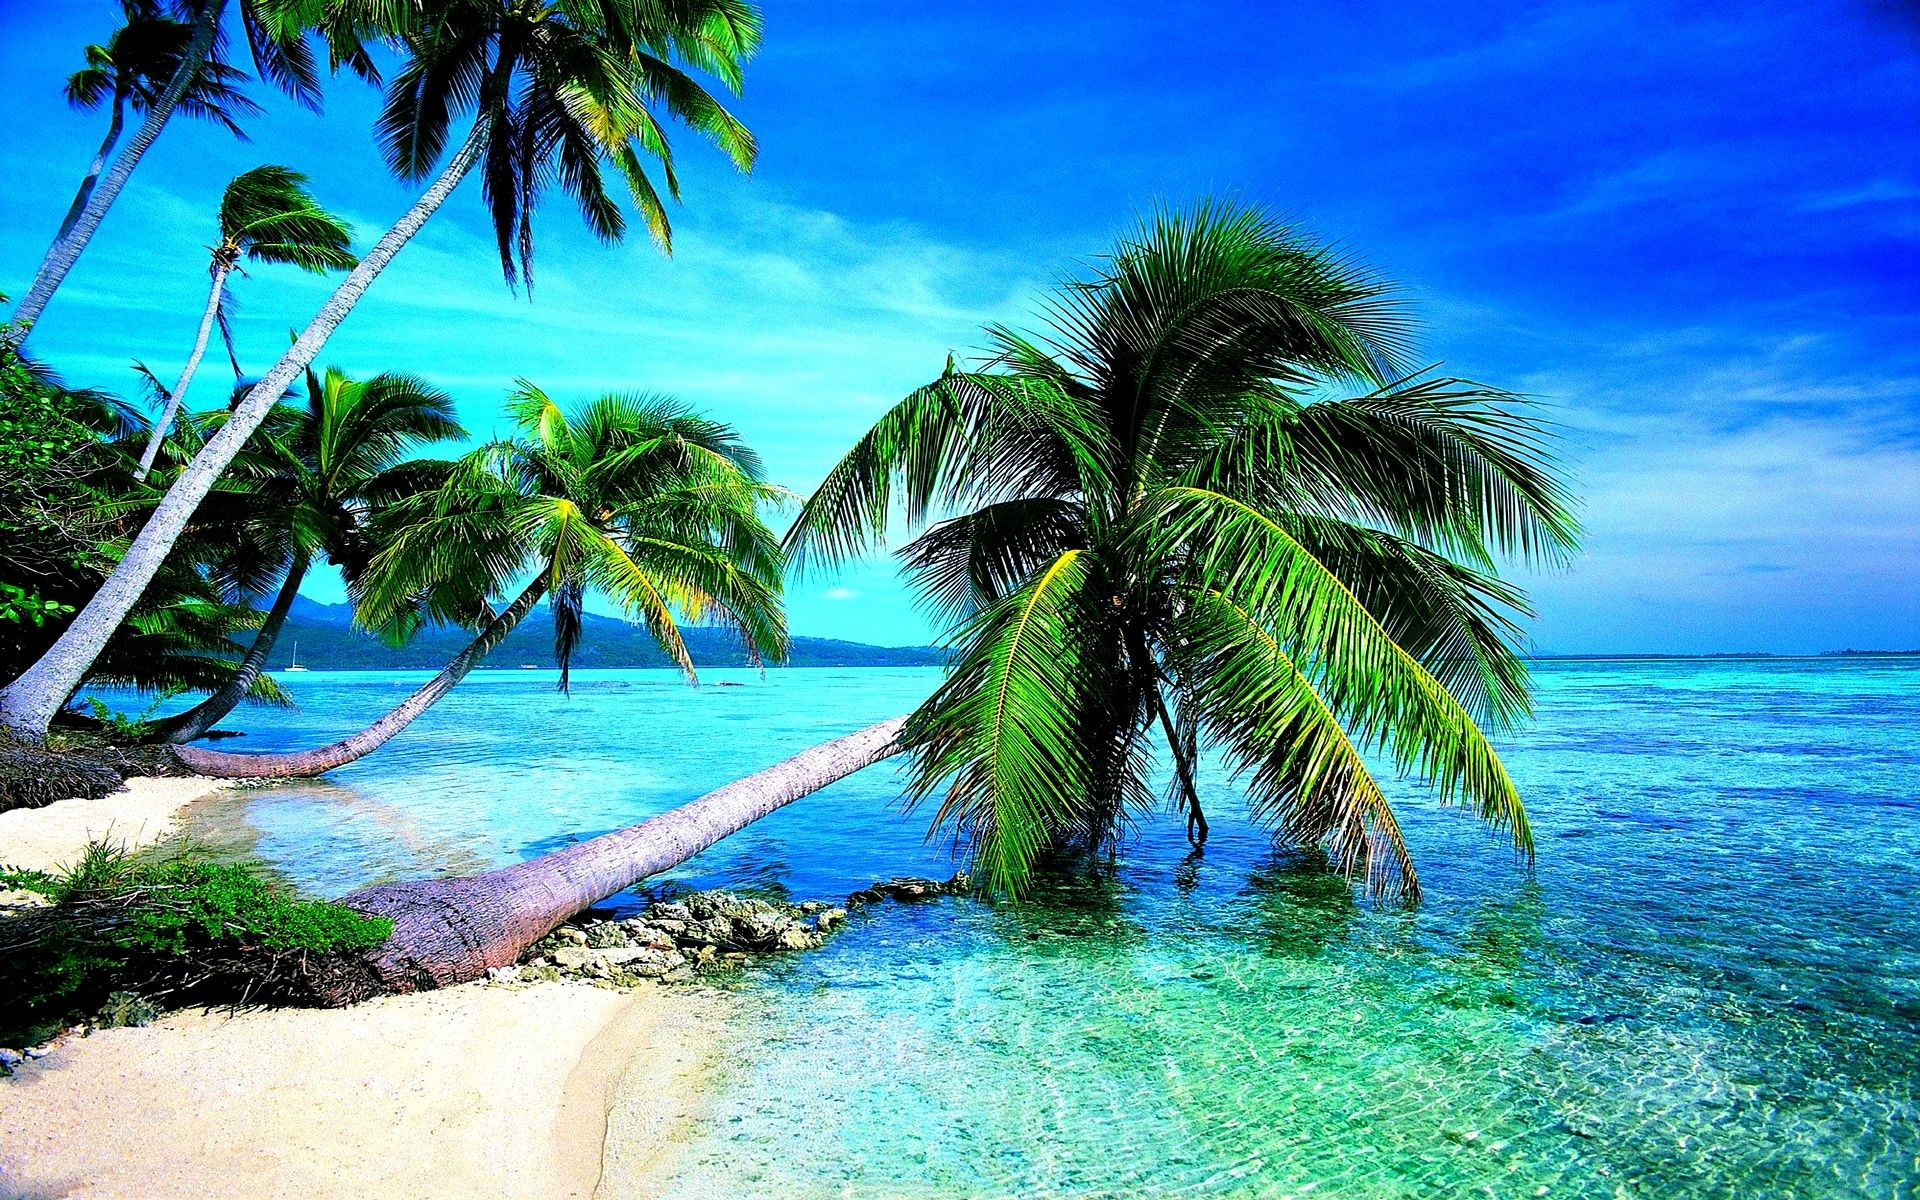 Desktop Backgrounds Tropical Desktop Backgrounds Tropical Hd Download Download Desktop Backgrou Beach Wallpaper Hd Wallpapers For Pc Attractive Wallpapers